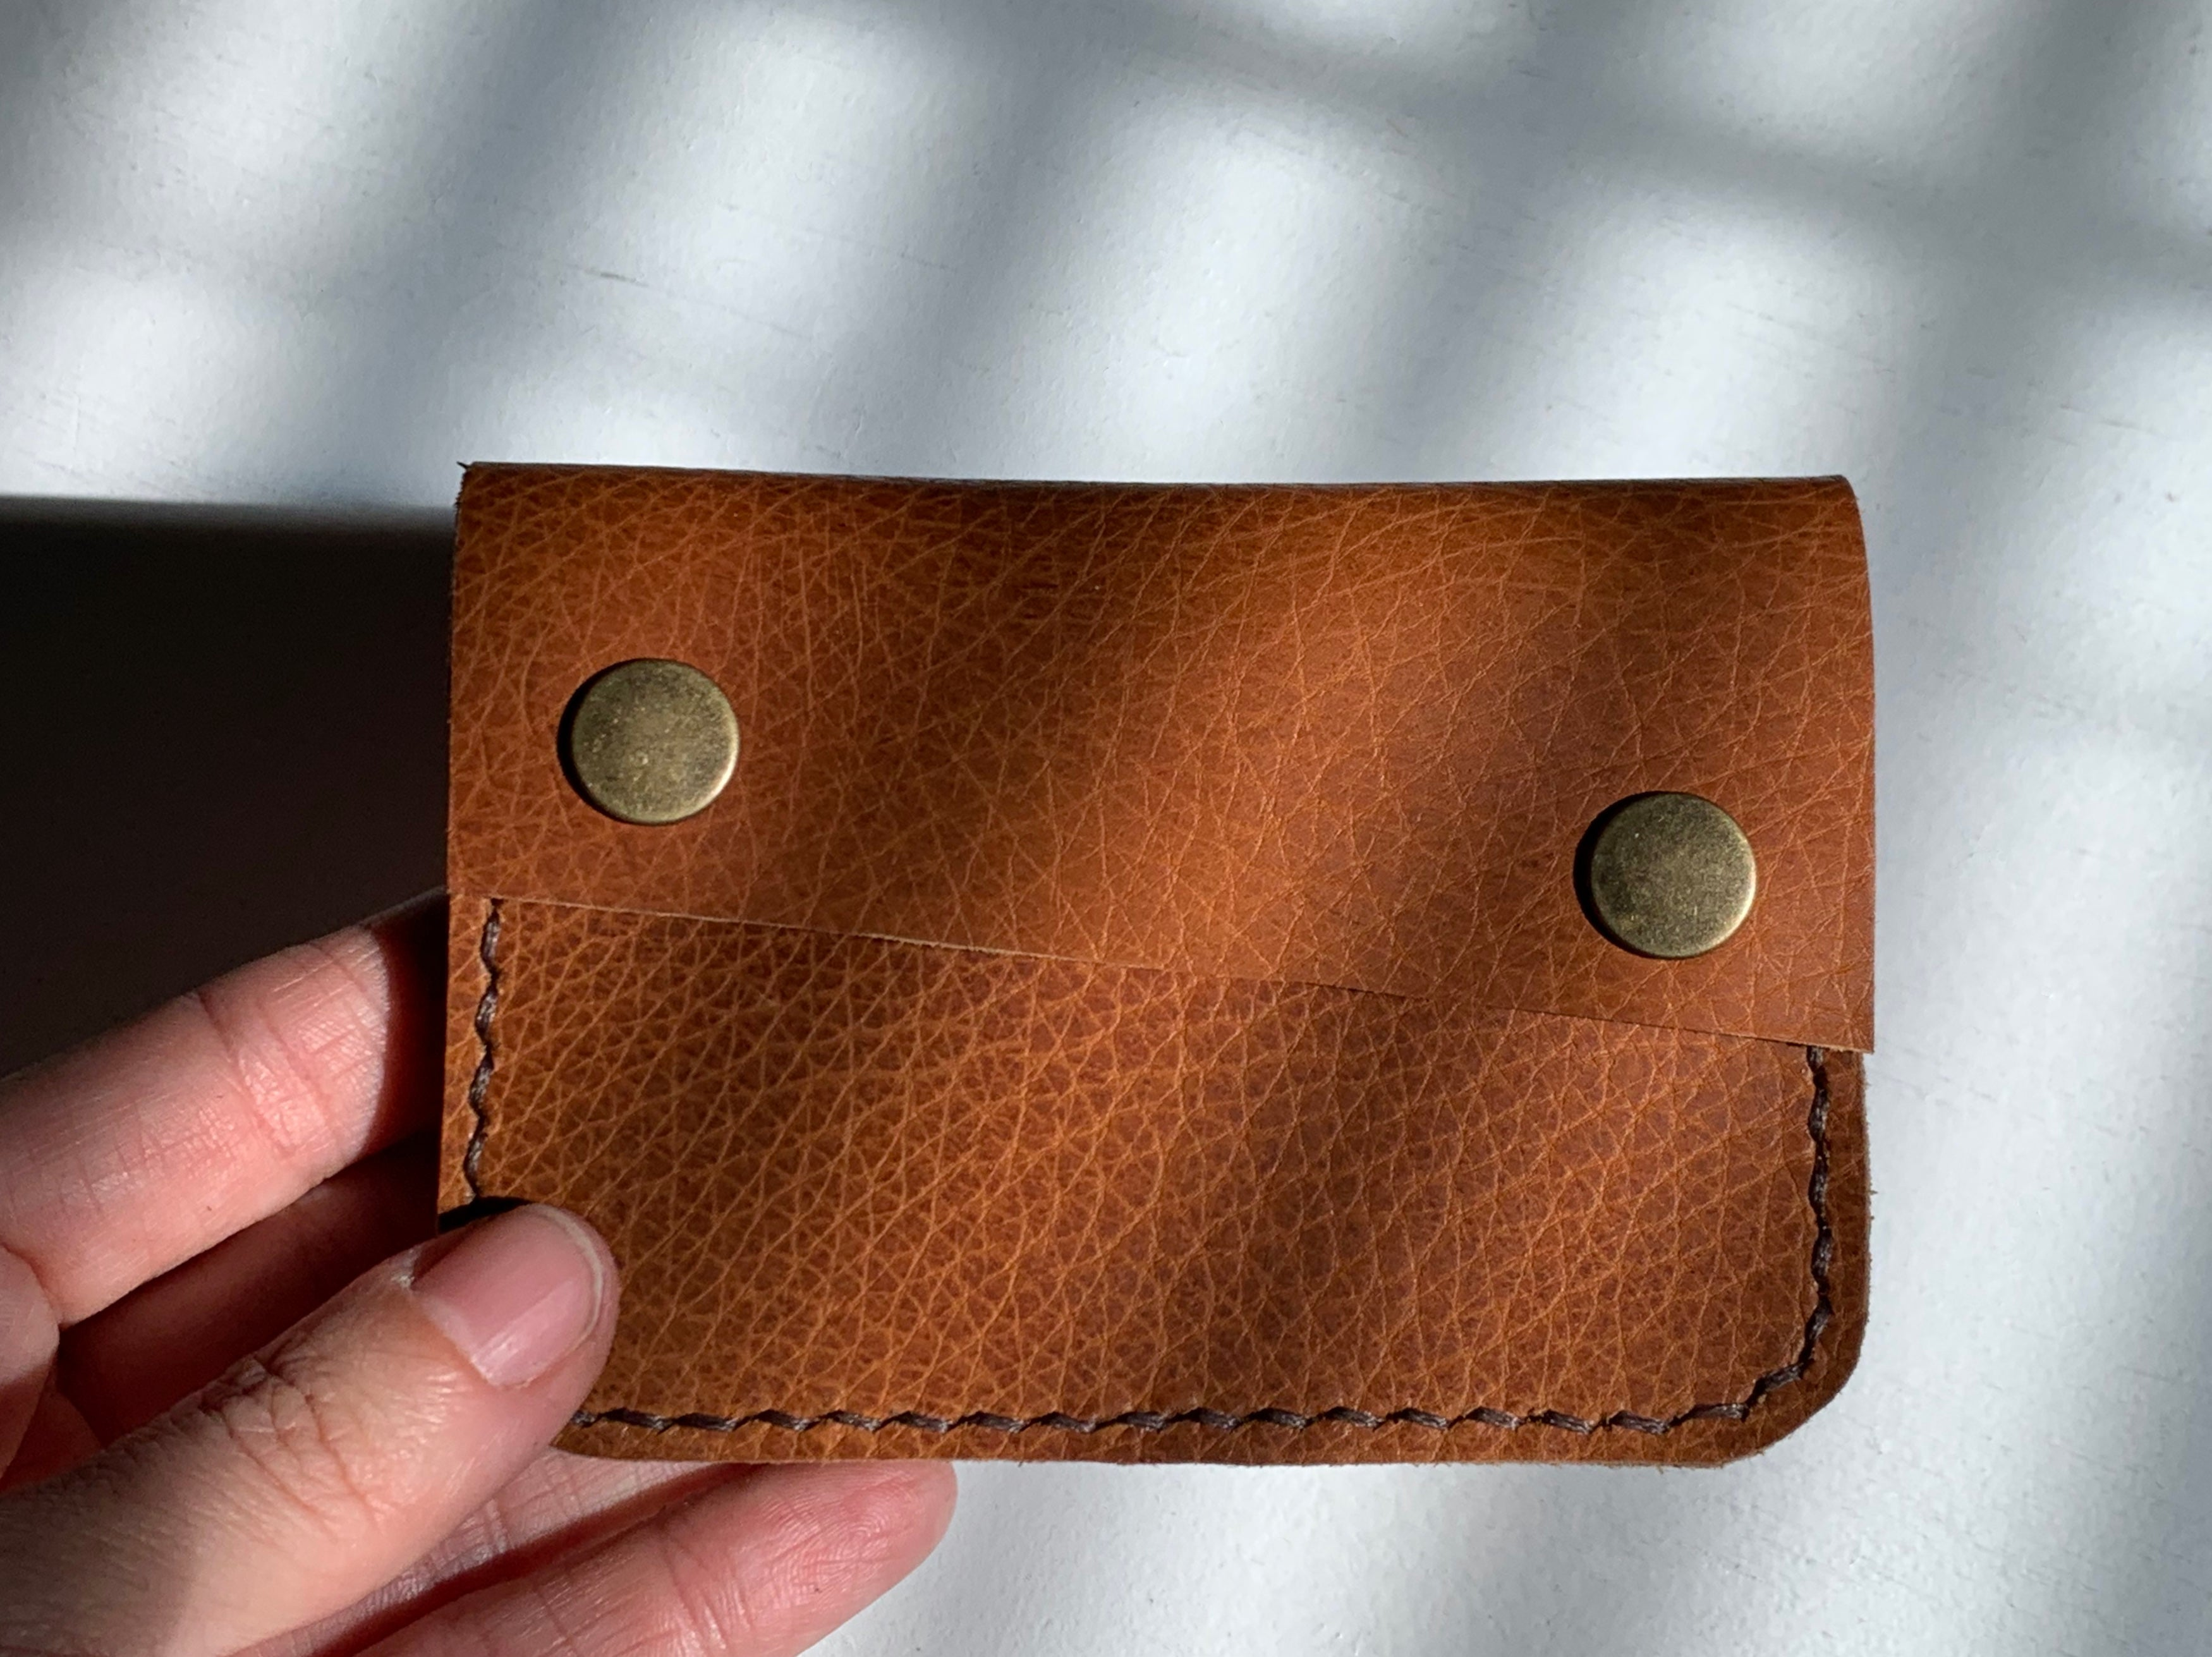 Bison Wallet | Heist Accordion wallet by Heist